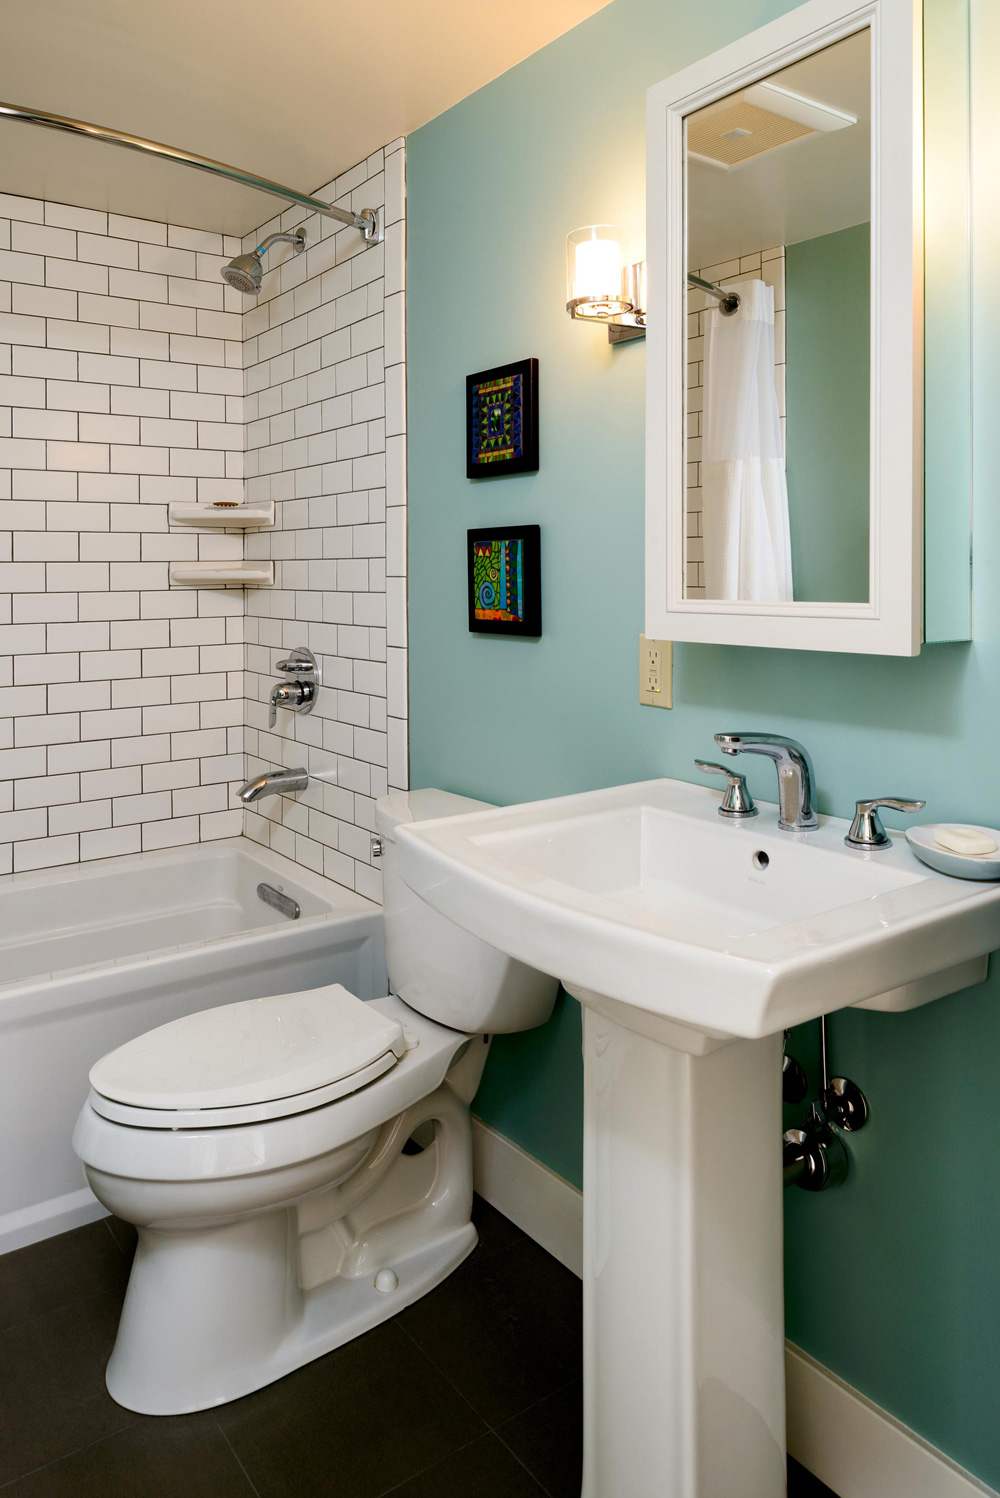 5 Creative Solutions for Small Bathrooms | Hammer & Hand on Simple:zvjxpw8Nmfo= Small Bathroom Ideas  id=32174